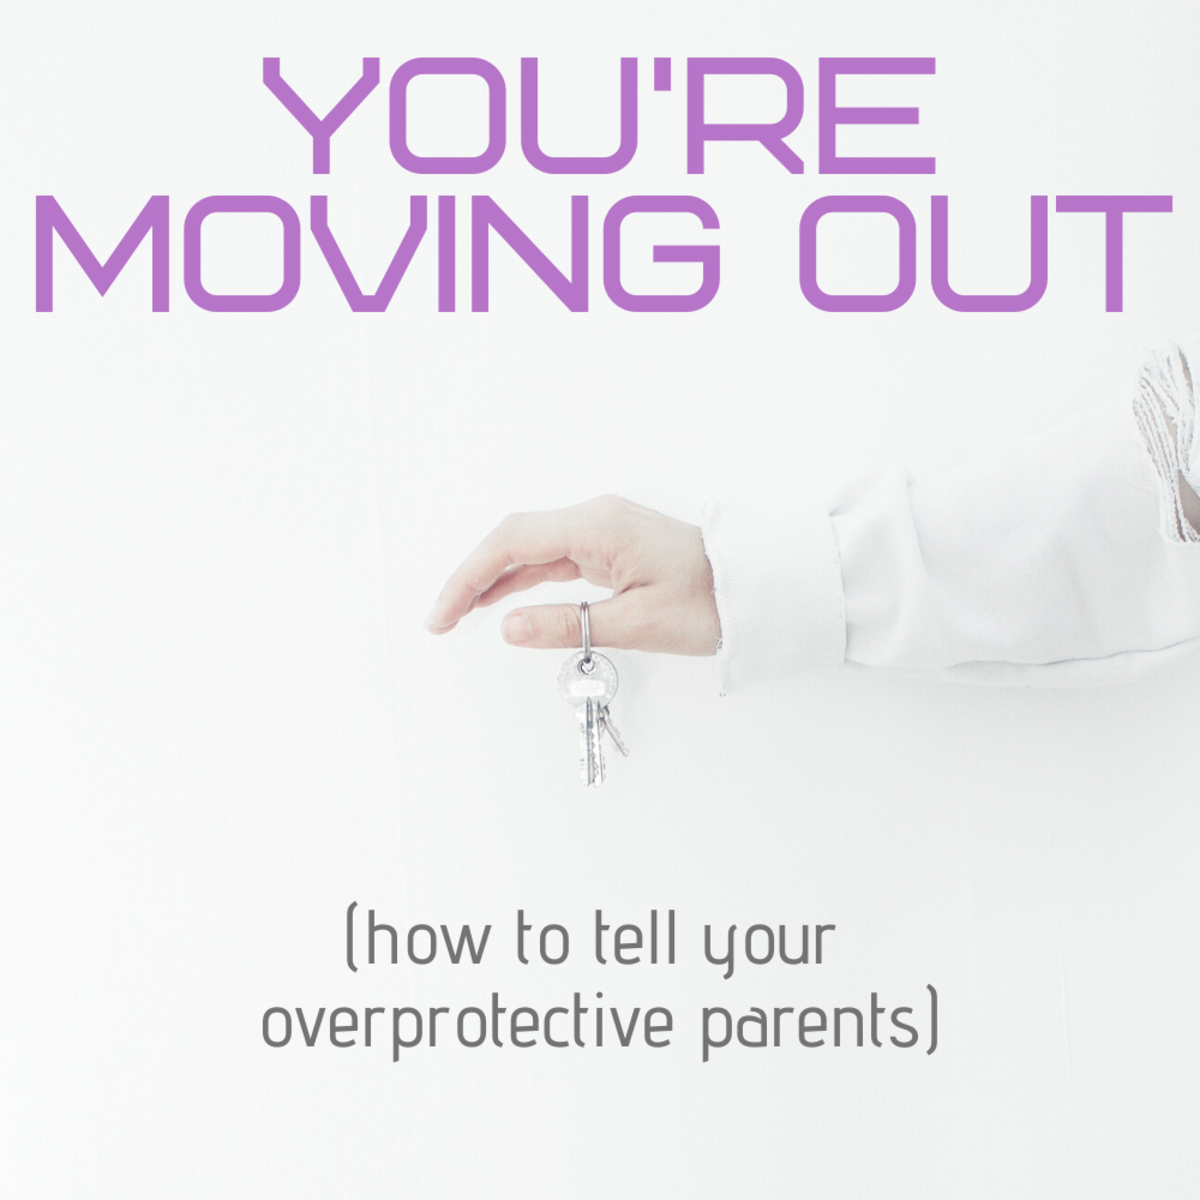 Are you planning to move out of your parents' home? How to break the news to an overprotective mom or dad.